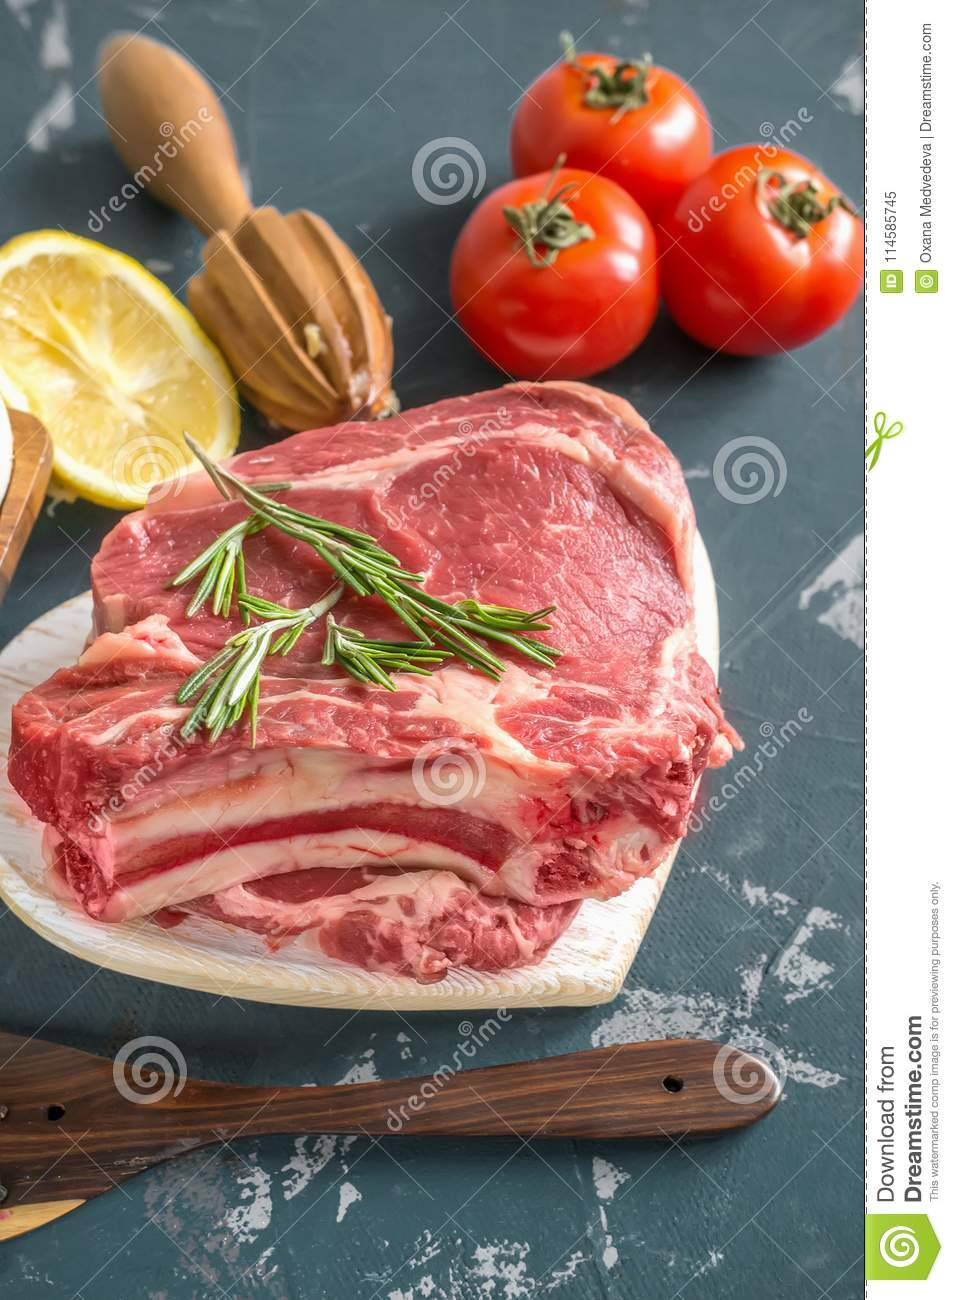 Cuts of beef for grilling on a wooden cutting Board with the Bay leaf, rosemary, olive oil and Provencal herbs for the marinade in